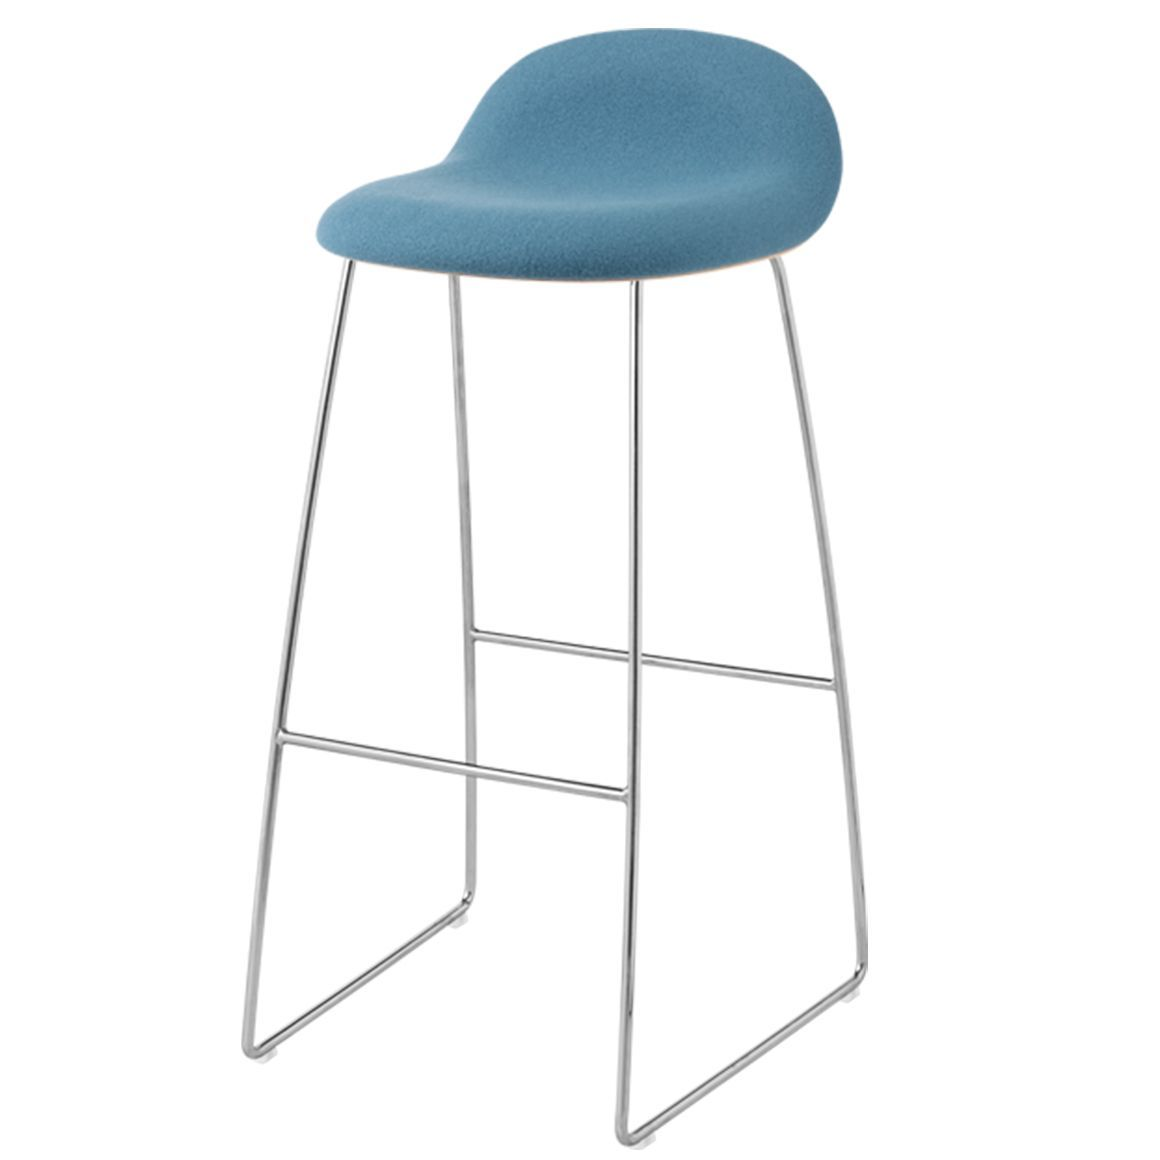 GUBI 3 STOOL-CHROME BASE - Eclectic Cool  - 11